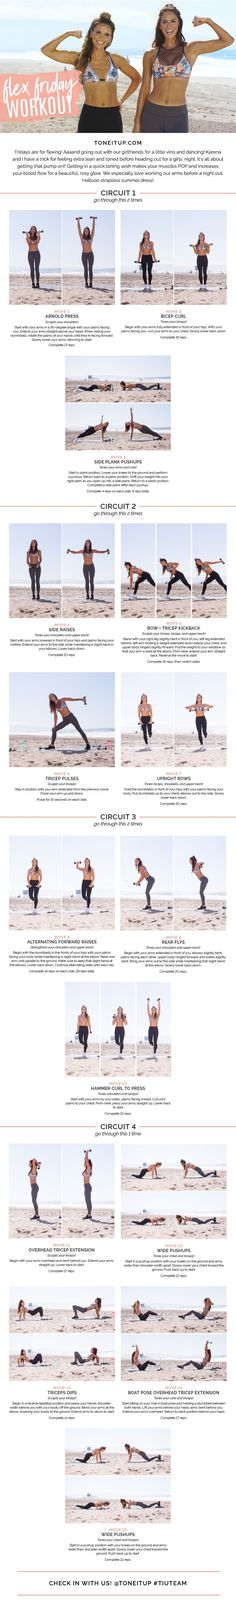 Flex Friday Workout from ToneItUp.com! With this workout, you're going to sculpt your biceps, triceps, shoulders, chest, and upper back for your own sexy Karena arms! And of course this routine's not just for Fridays…you can do it any day you like!